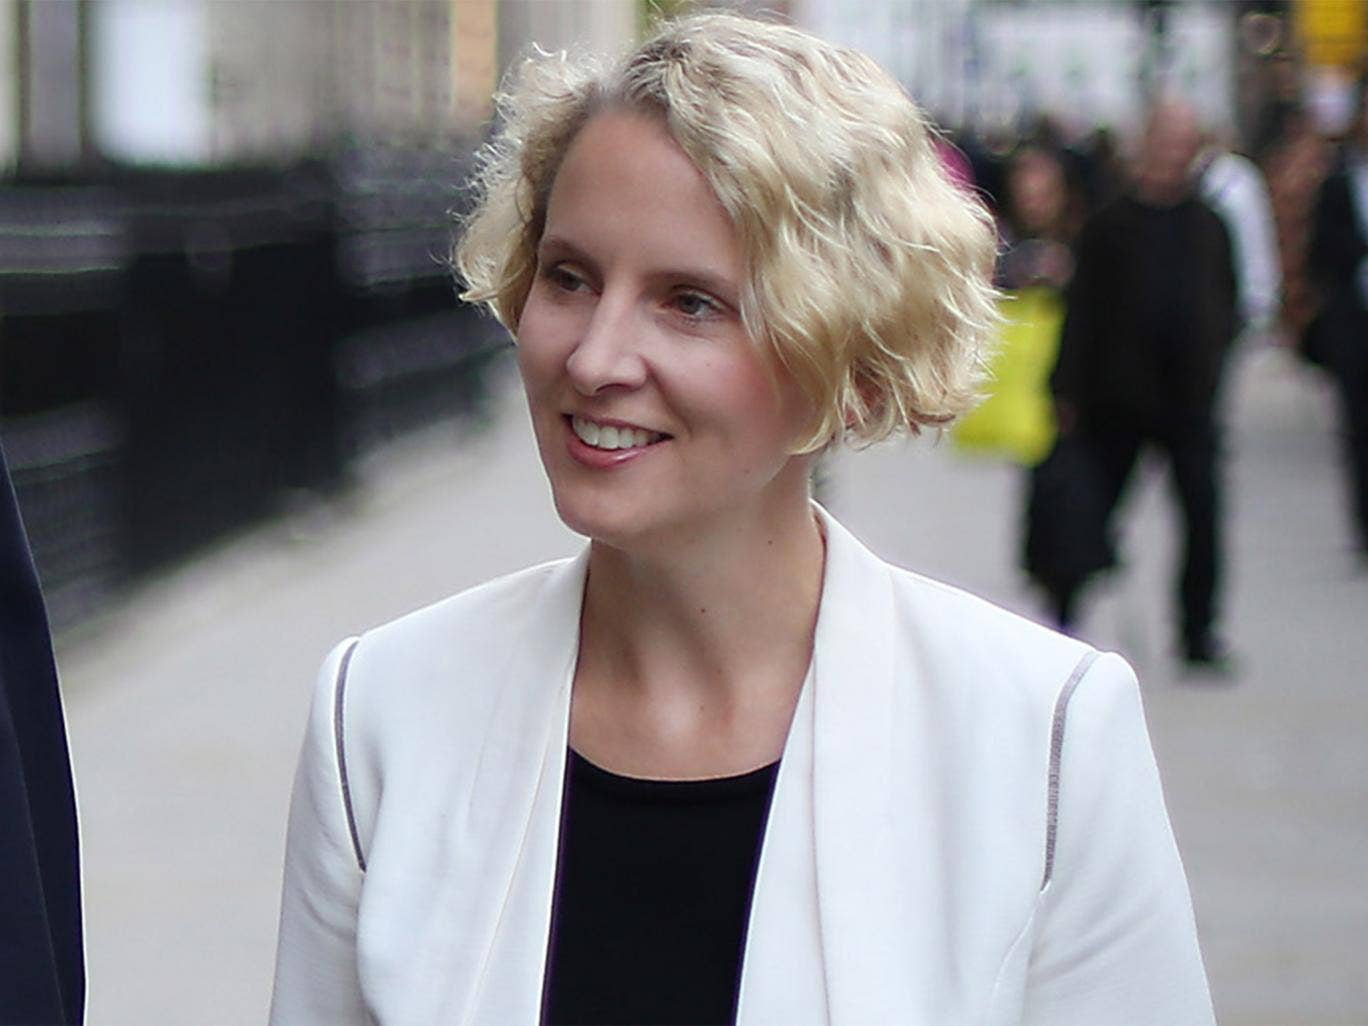 Emma Reynolds, shadow housing minister, claims the Tories have failed to build enough homes